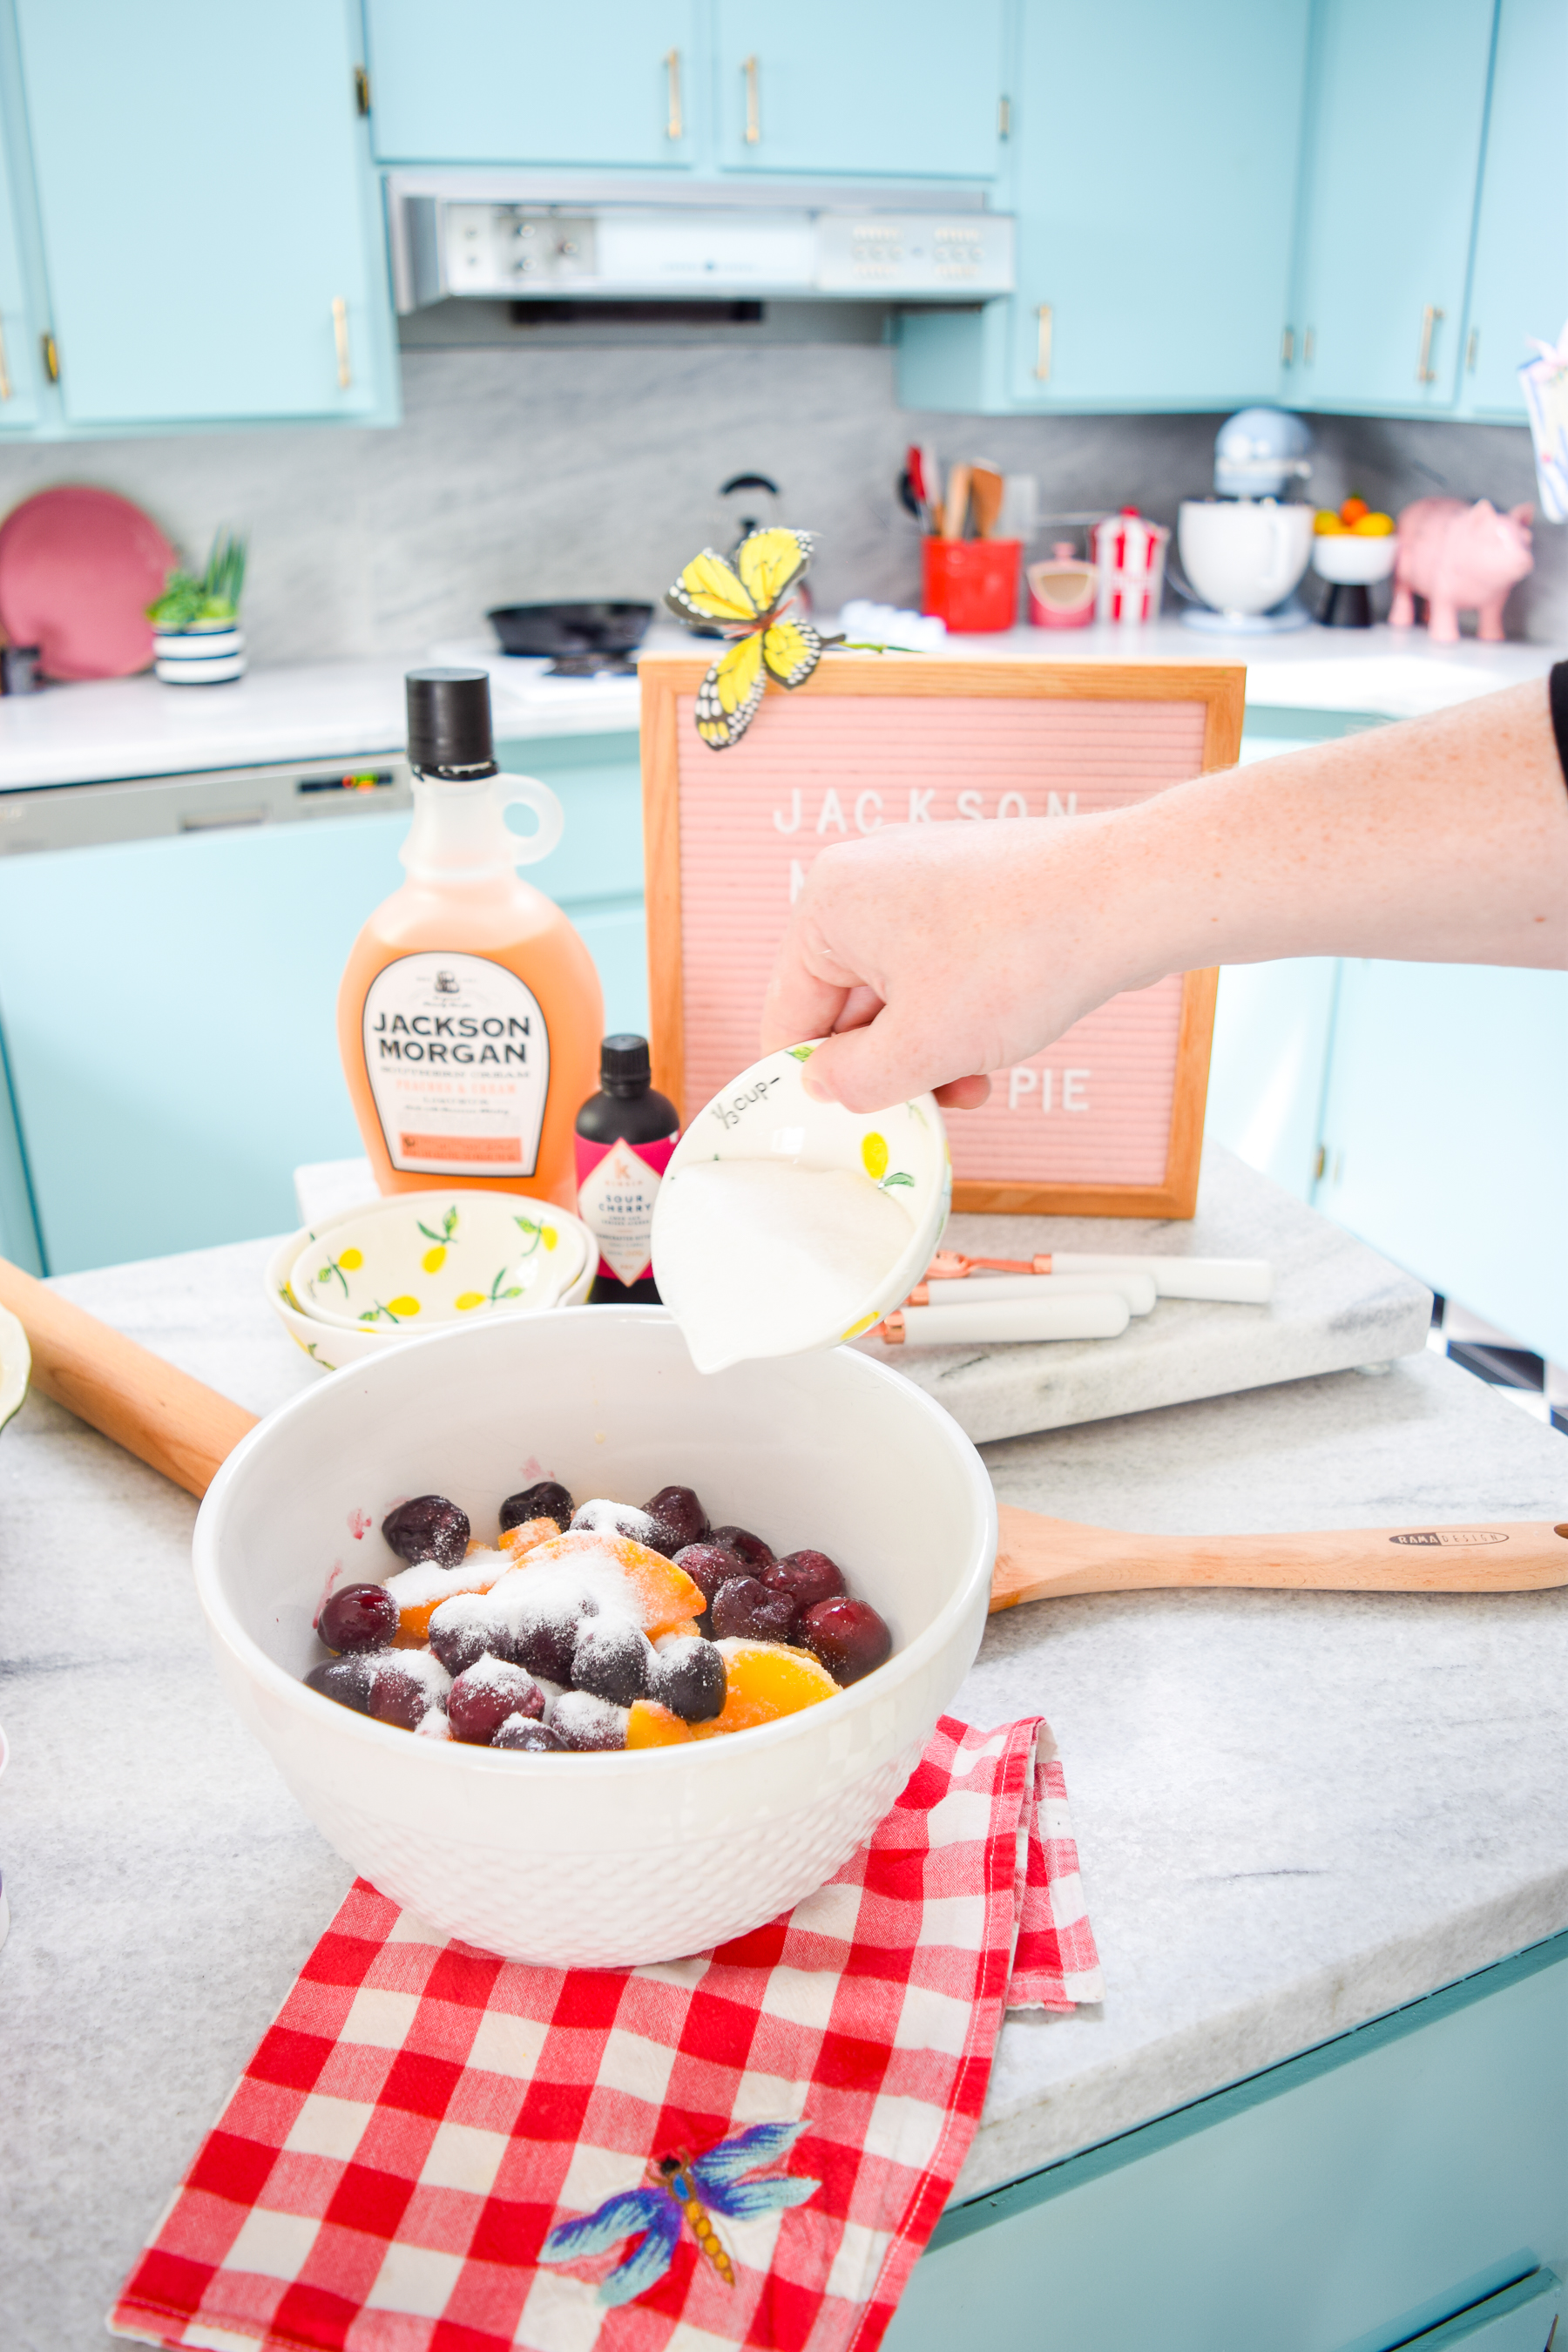 Whip up a boozy peach & cherry pie in time for the long weekend! You won't regret putting these flavours together with a dash of Jackson Morgan Cream.